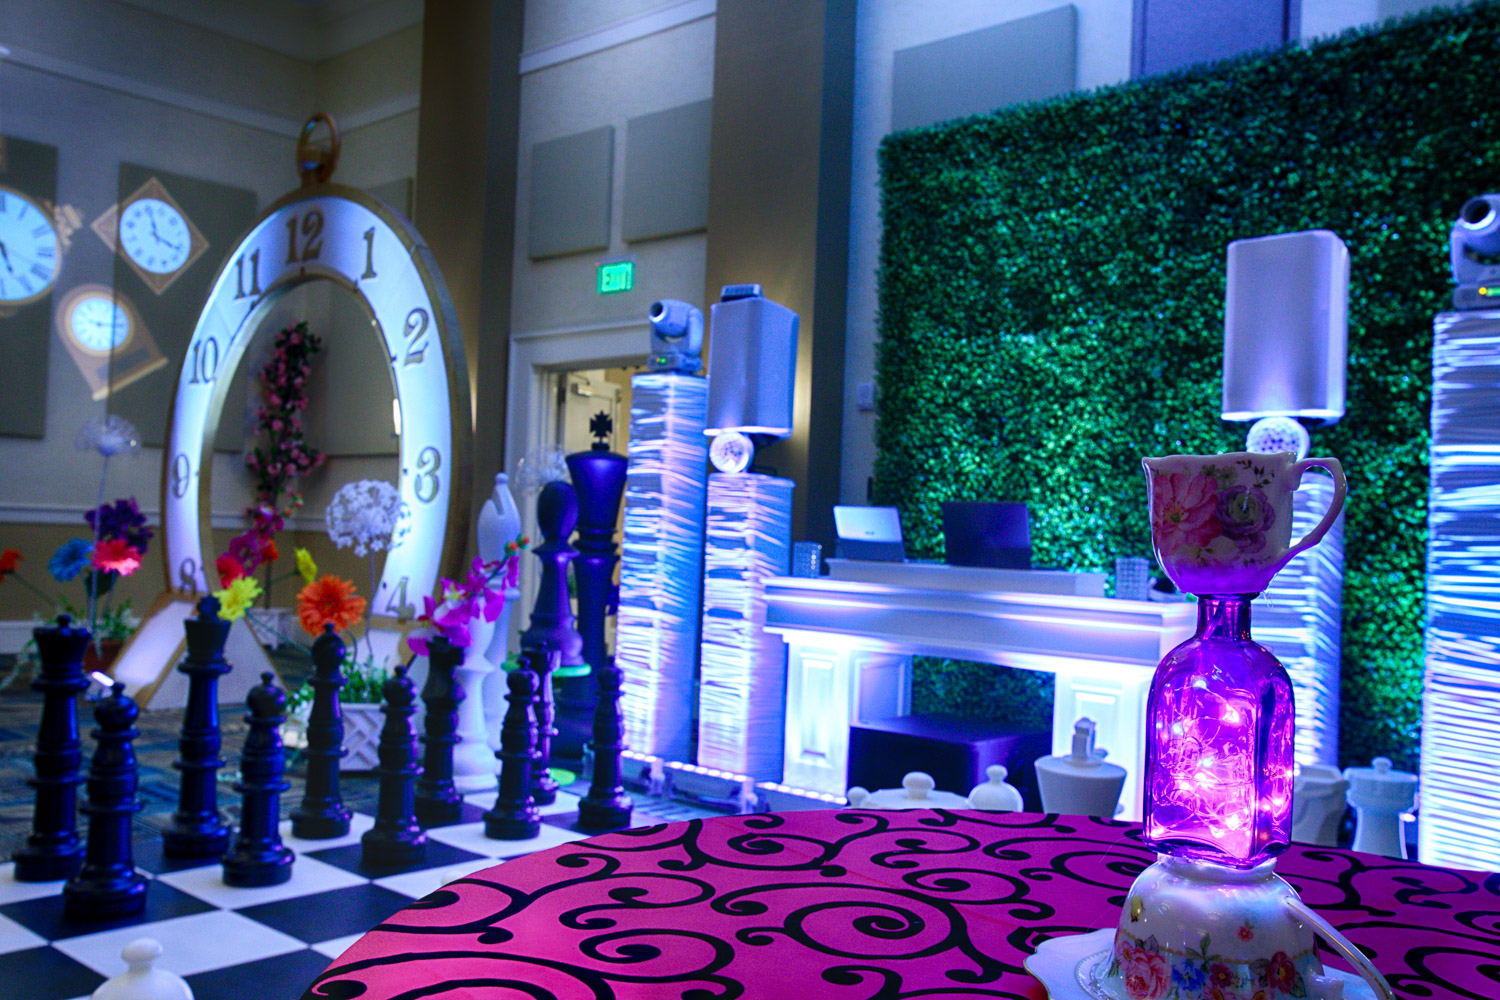 wonderland_envents_myrtle beach_dmc_cent